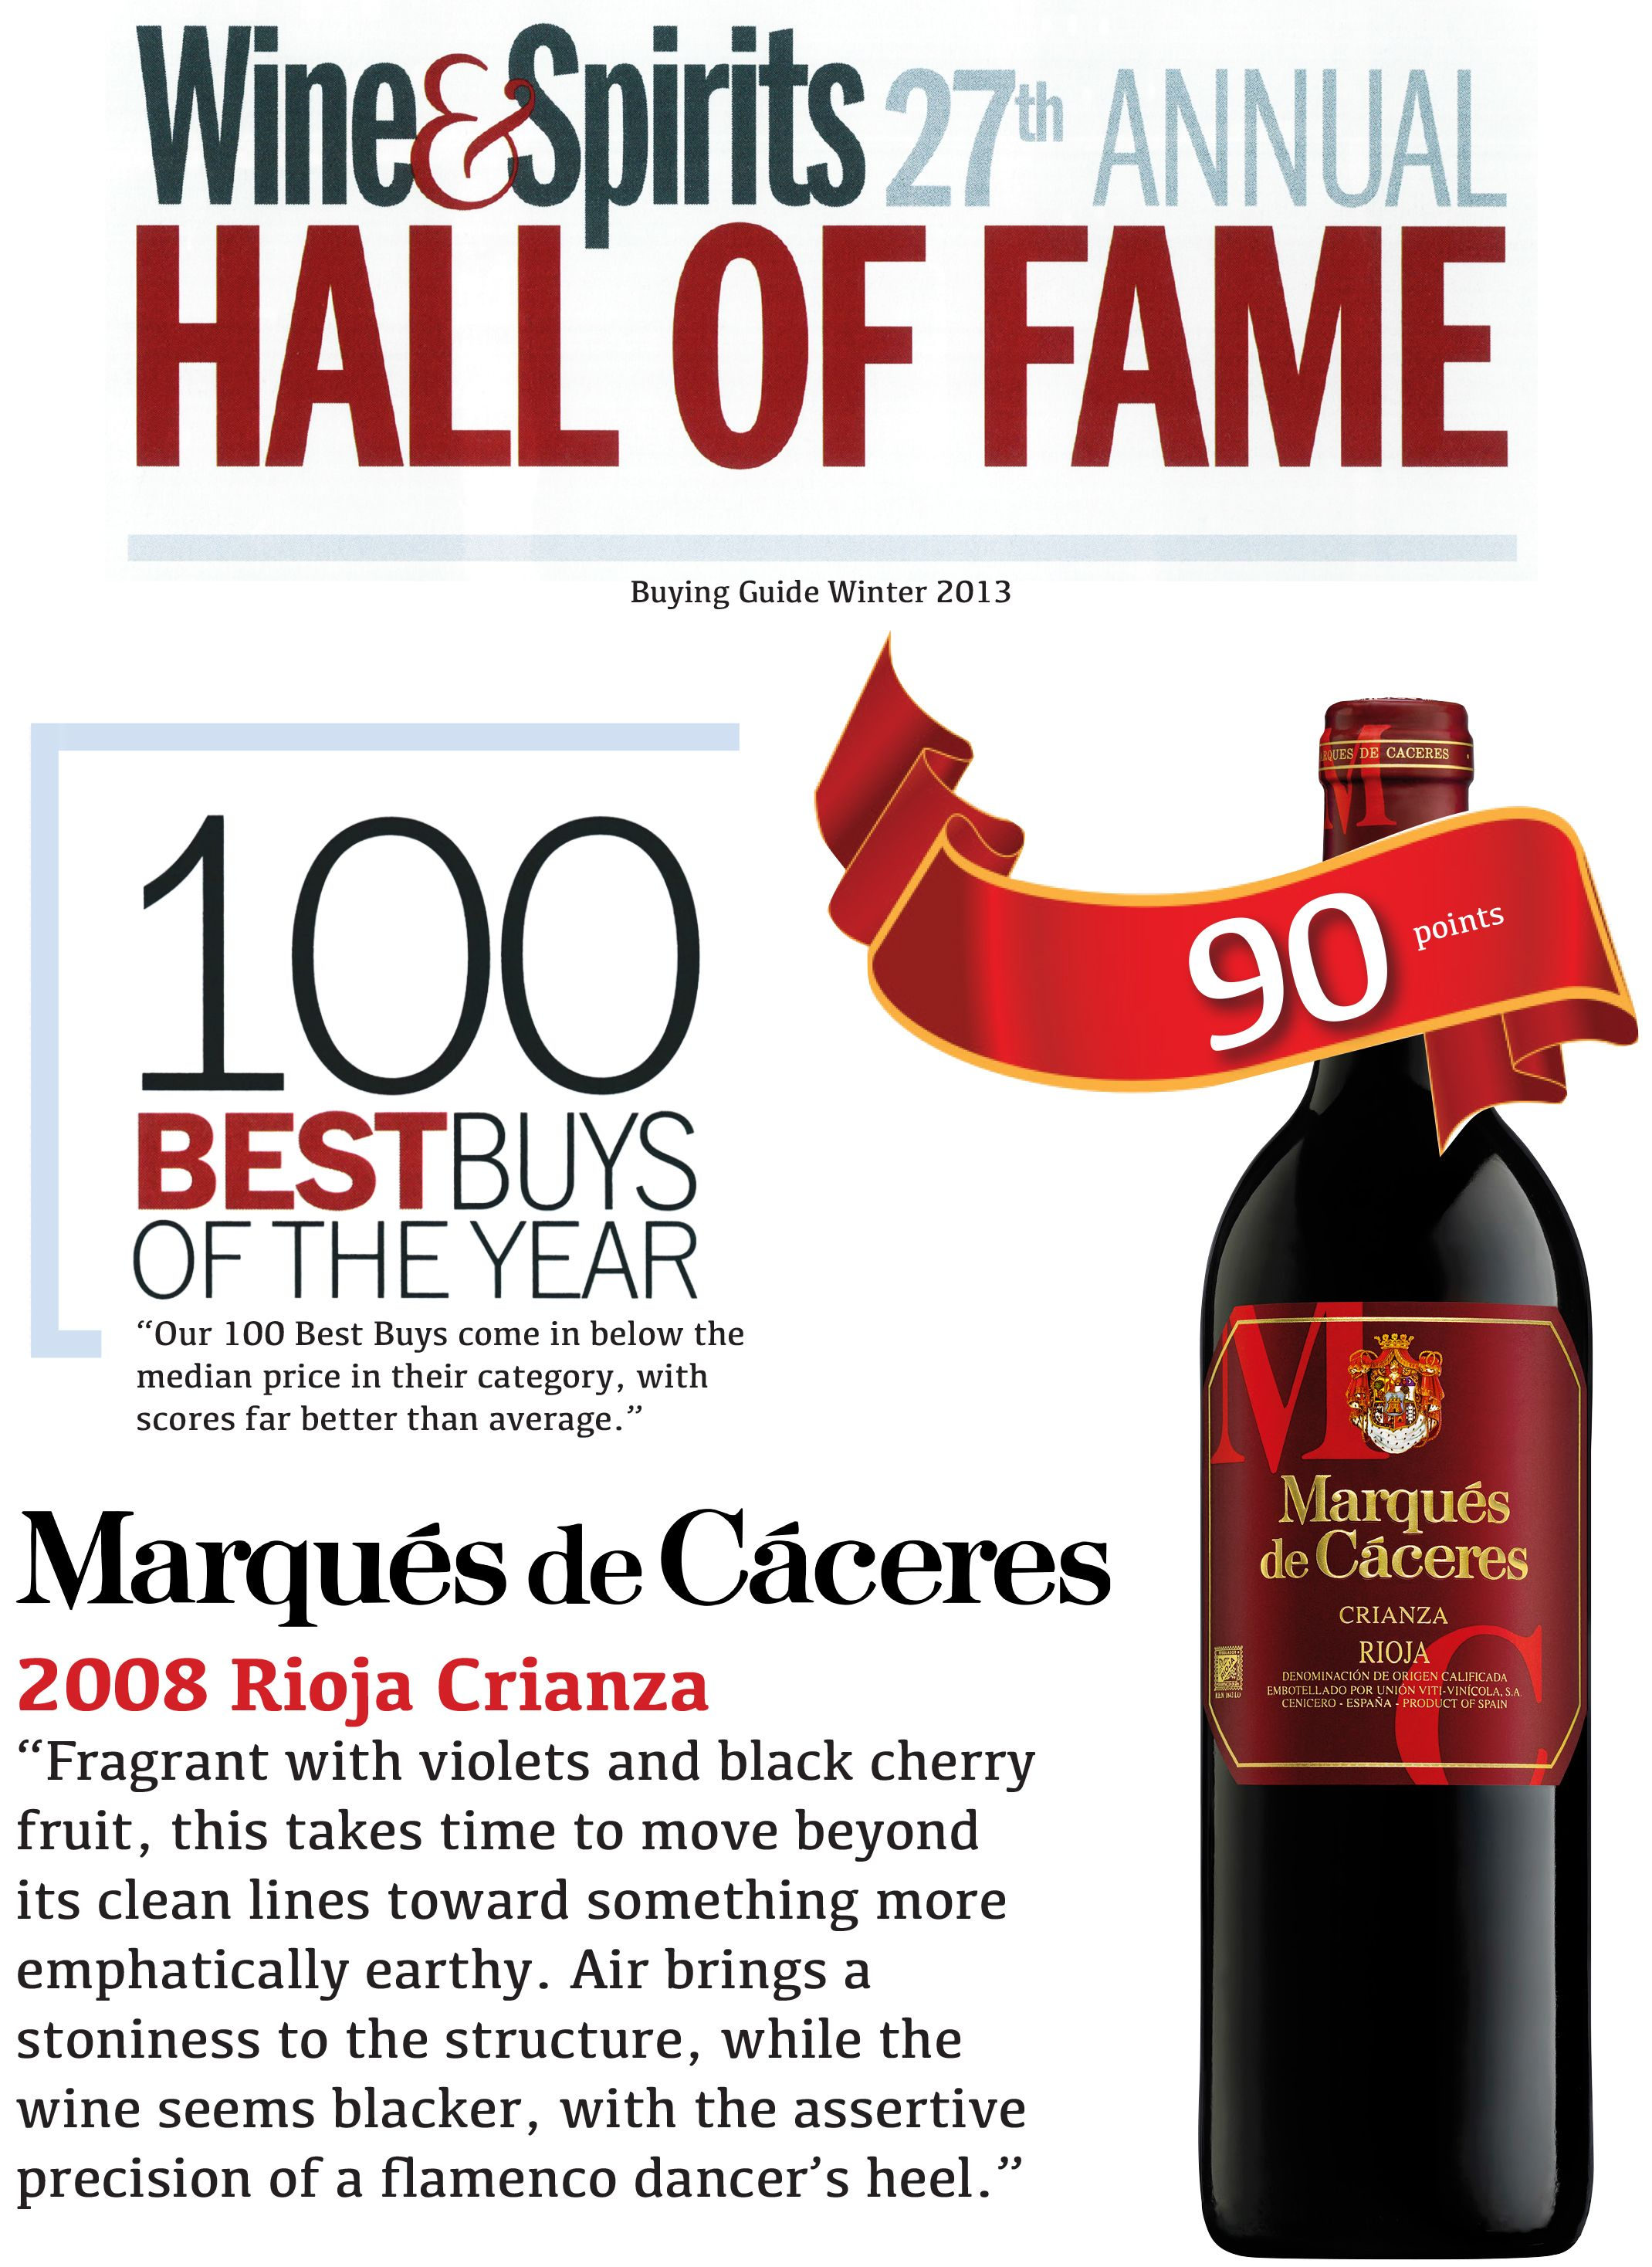 Marques De Caceres 2008 Rioja Crianza 100 Best Buys Of The Year Wine Spirits 27th Annual Hall Of Fame Cool Things To Buy Rioja Caceres